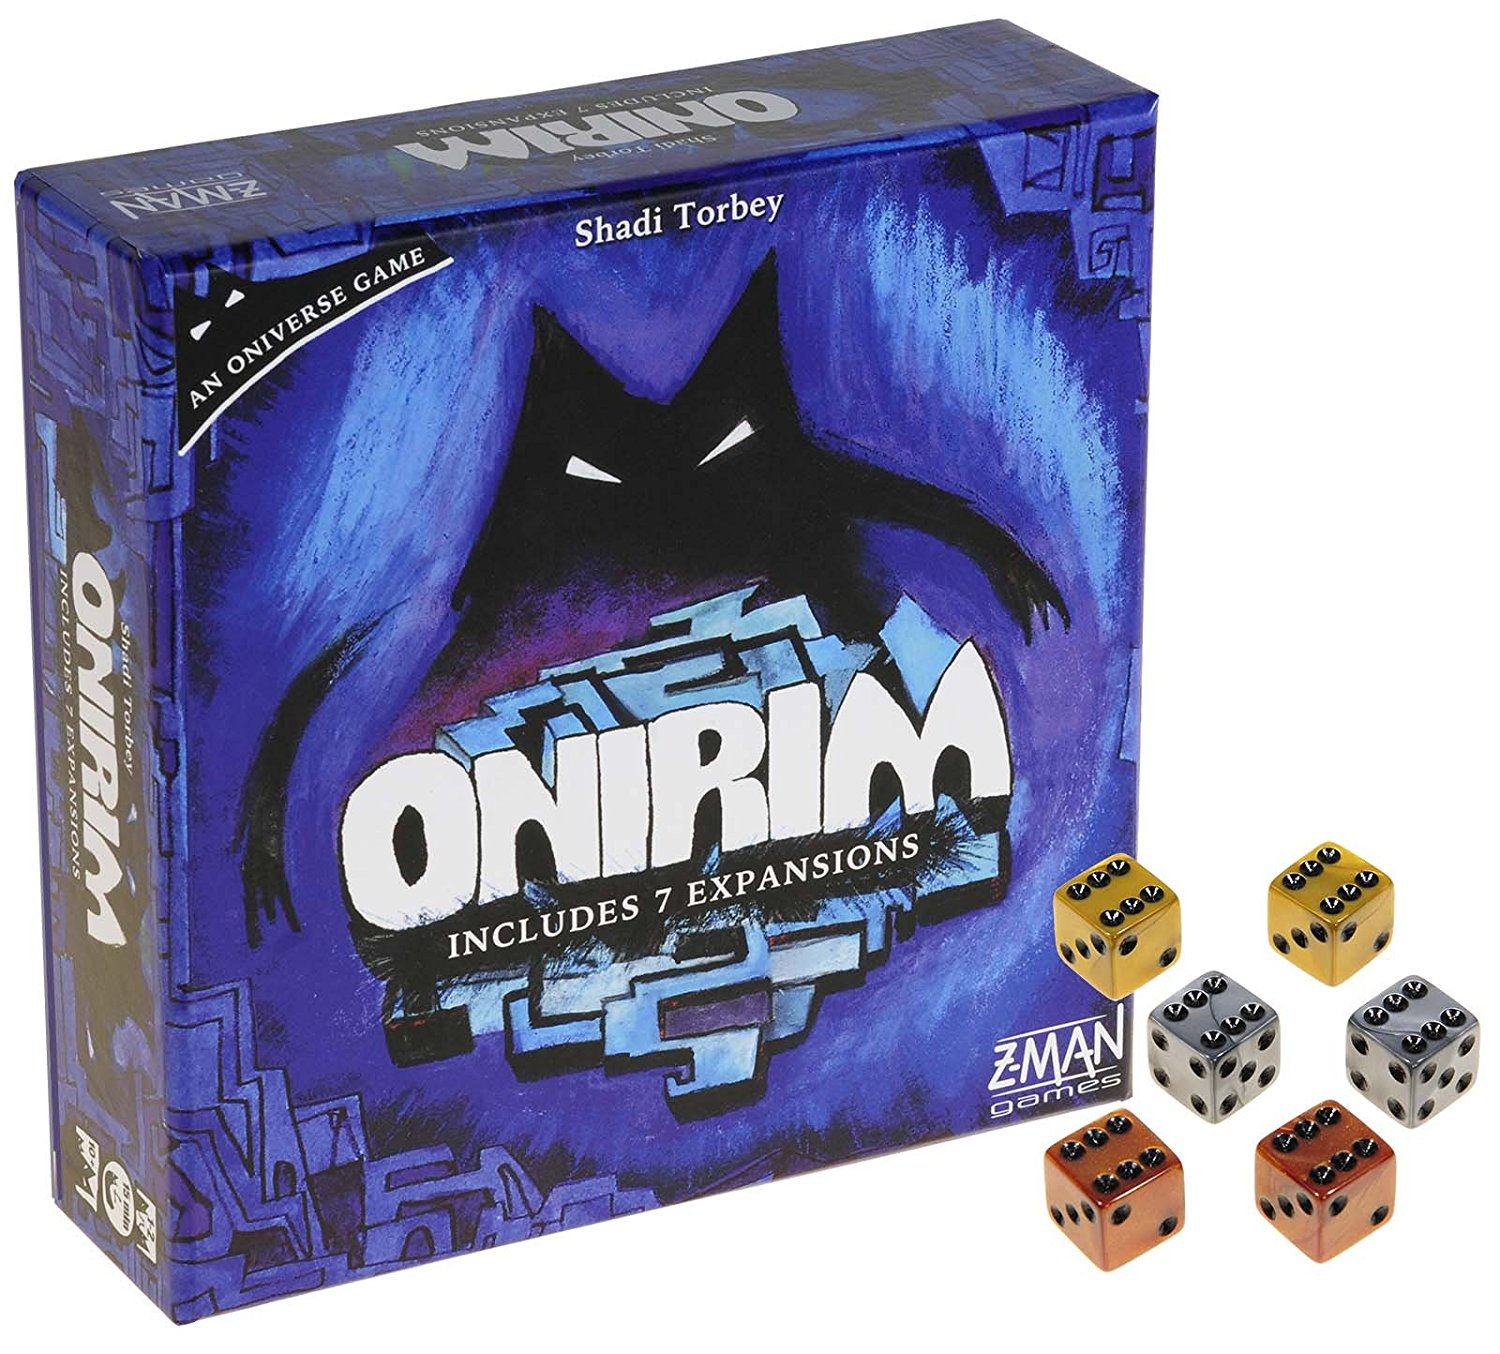 Onirim Card Game with 7 Expansions _ Bonus Set of 2 Gold, 2 Silver, and 2 Bronze Swirl d6 Game Dice _ Bundled Items